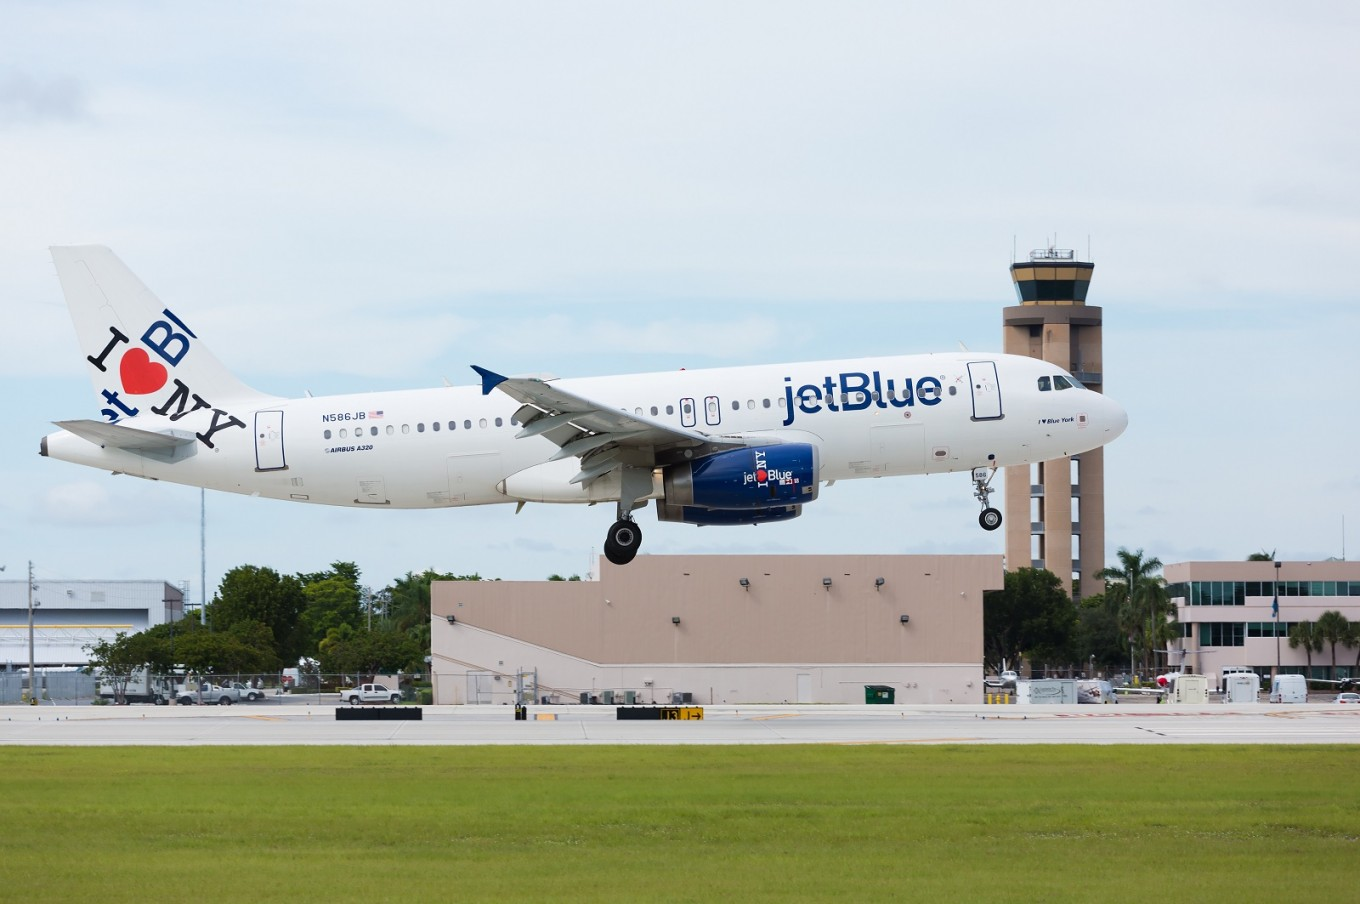 93e532194e JetBlue increases fees for checked bags - News - The Jakarta Post